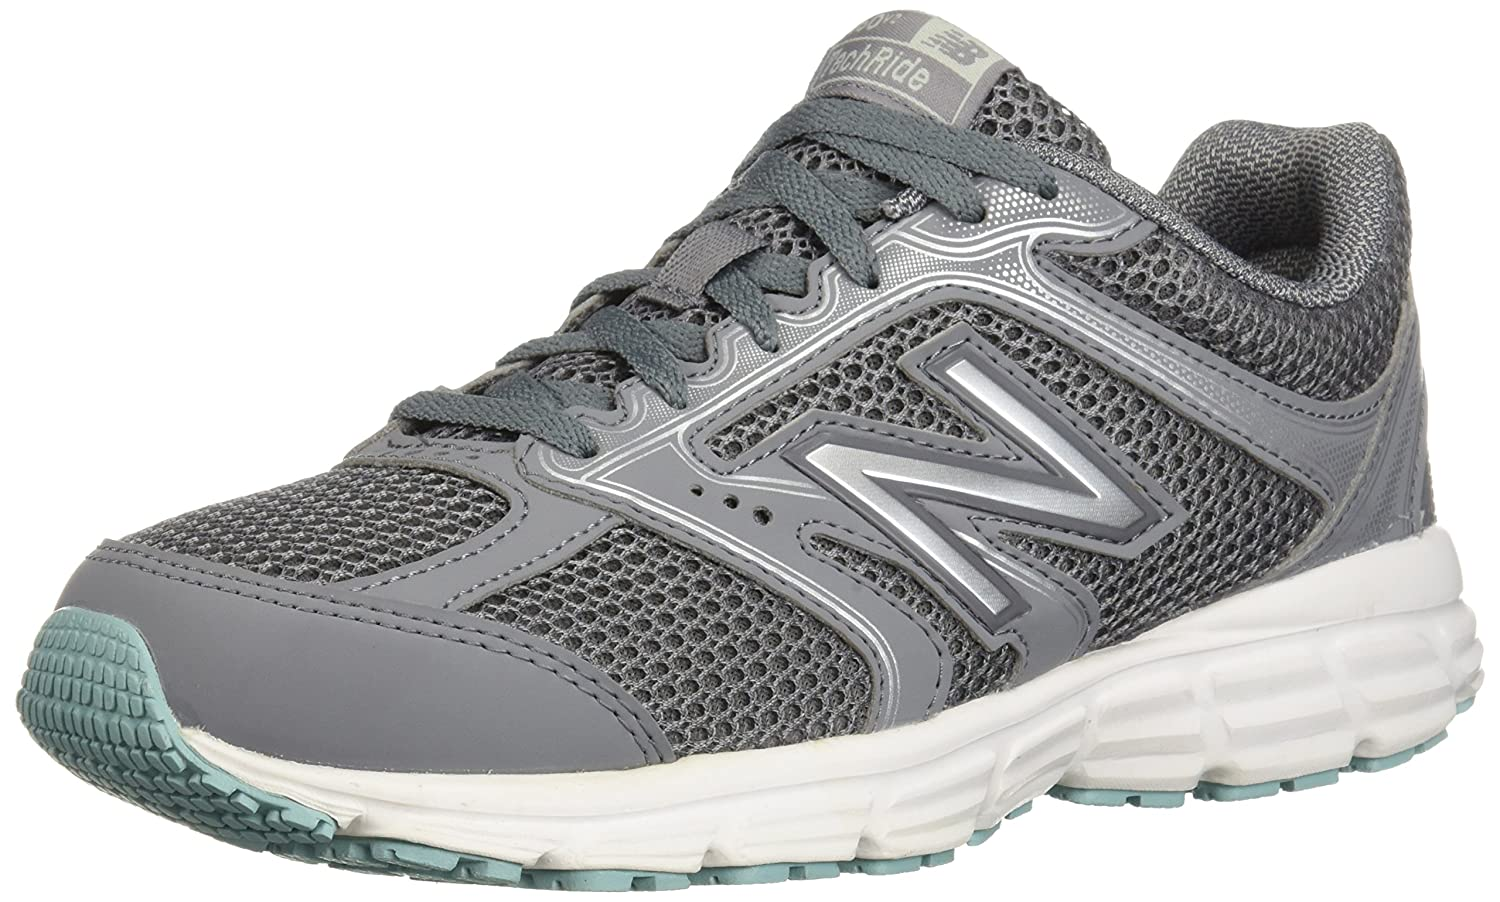 New Balance Women's 460v2 Cushioning B075R6VH52 8 W US|Gunmetal